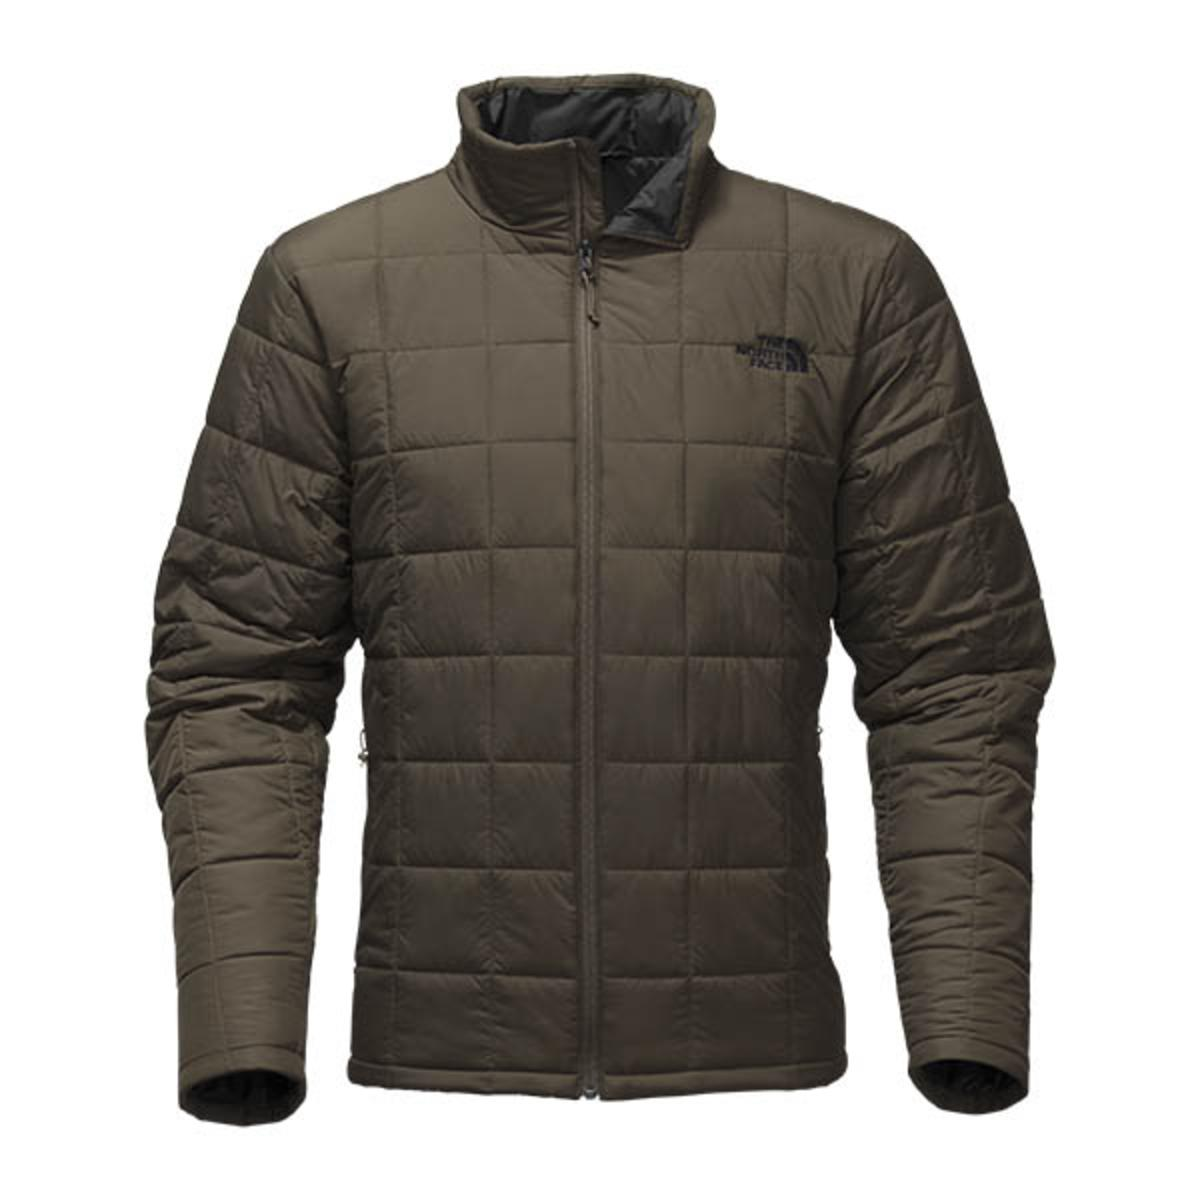 258e0a5ef626 The North Face Men s Harway Jacket - The Warming Store